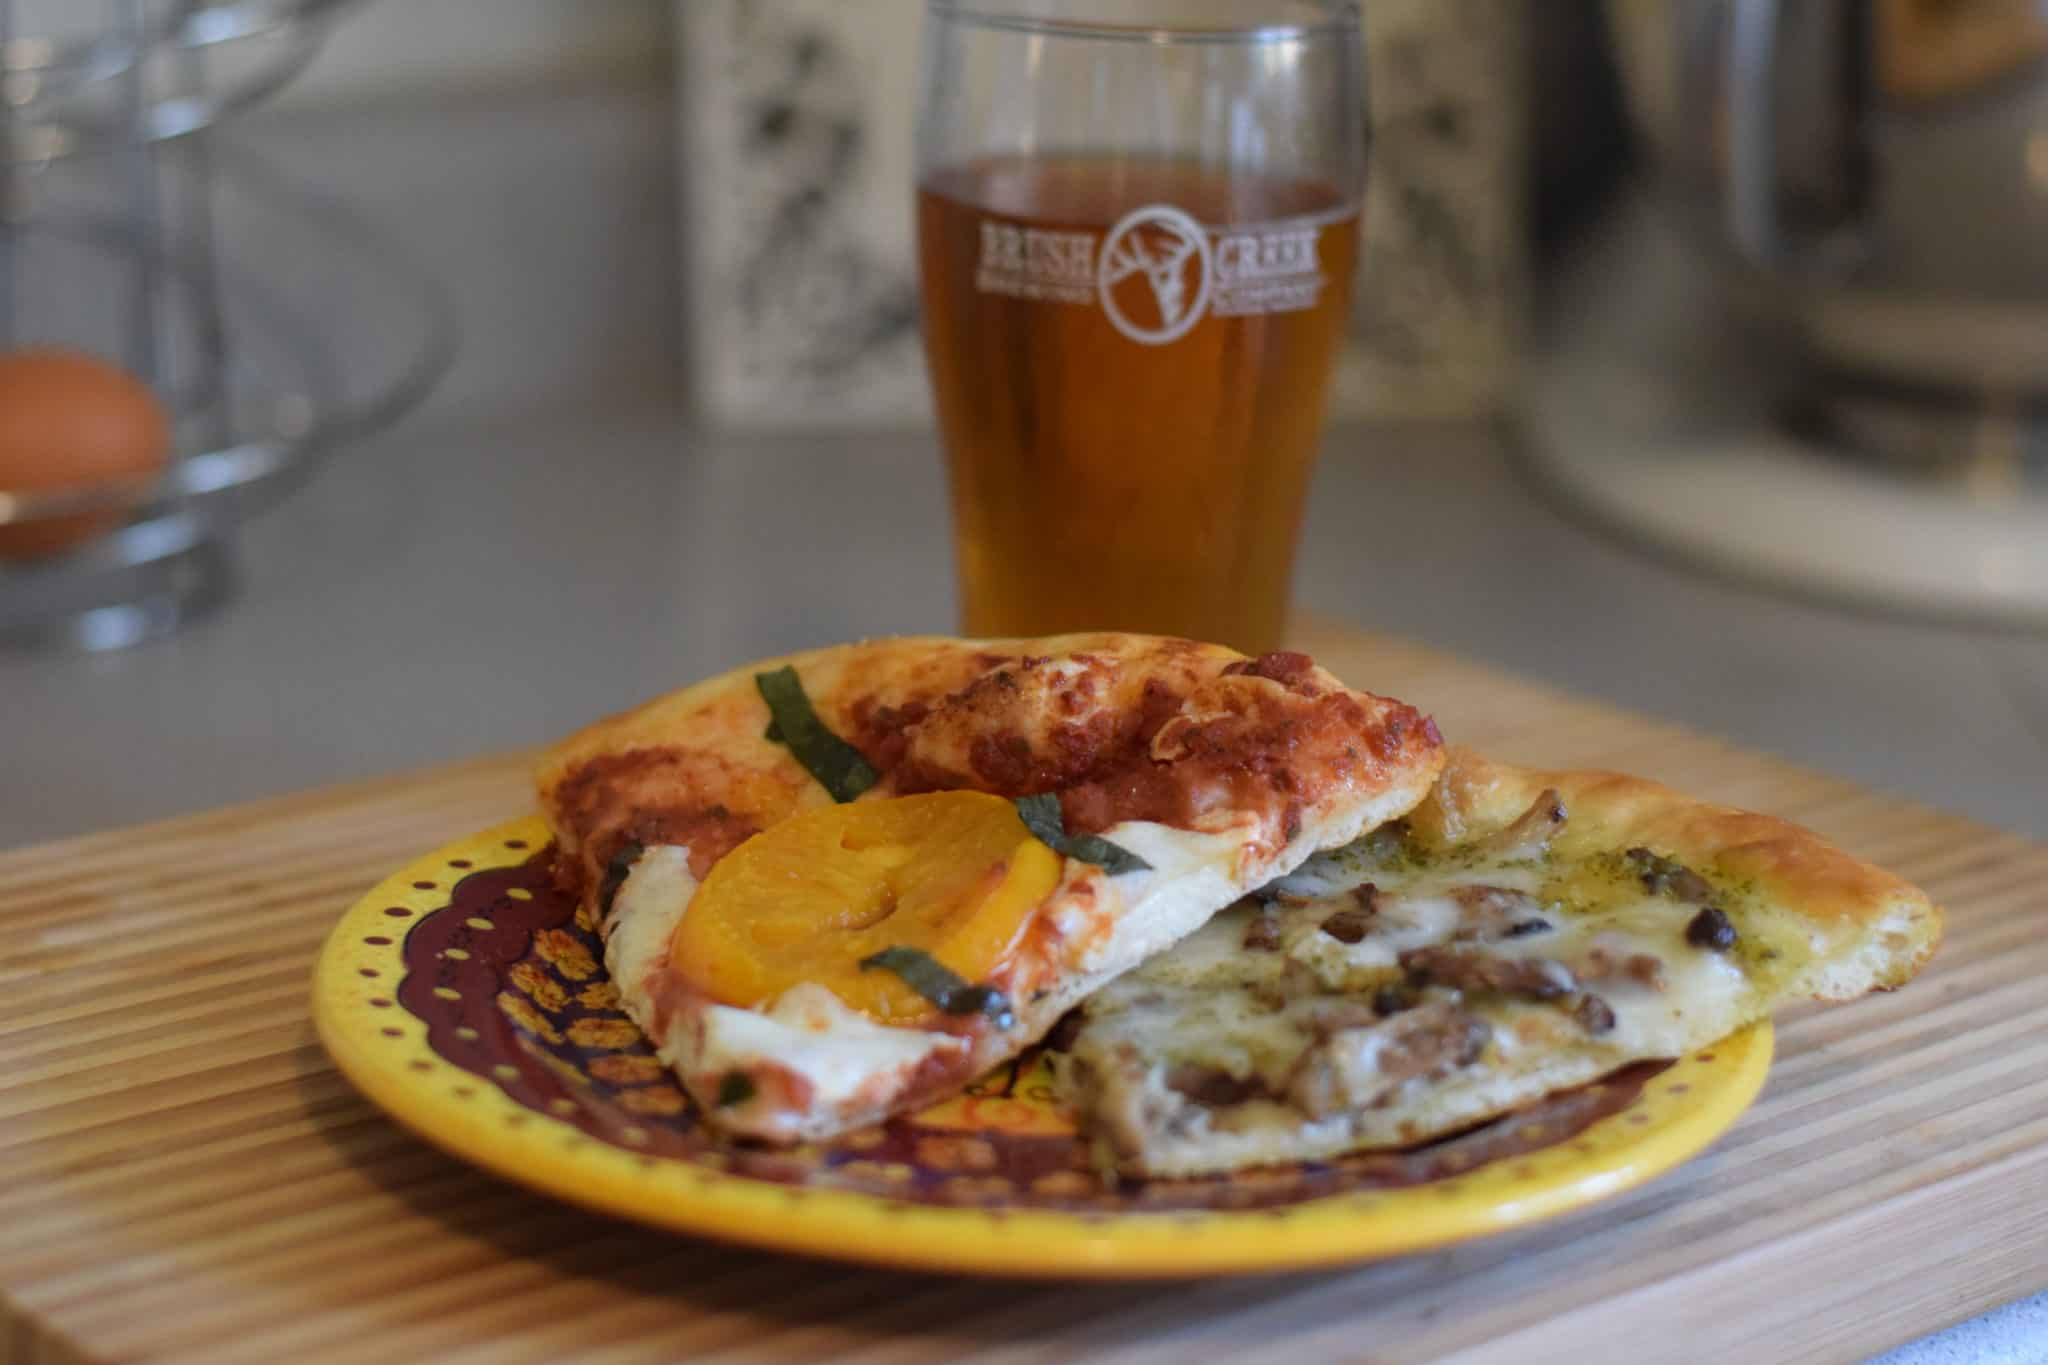 pizza on a plate and beer in cup in background